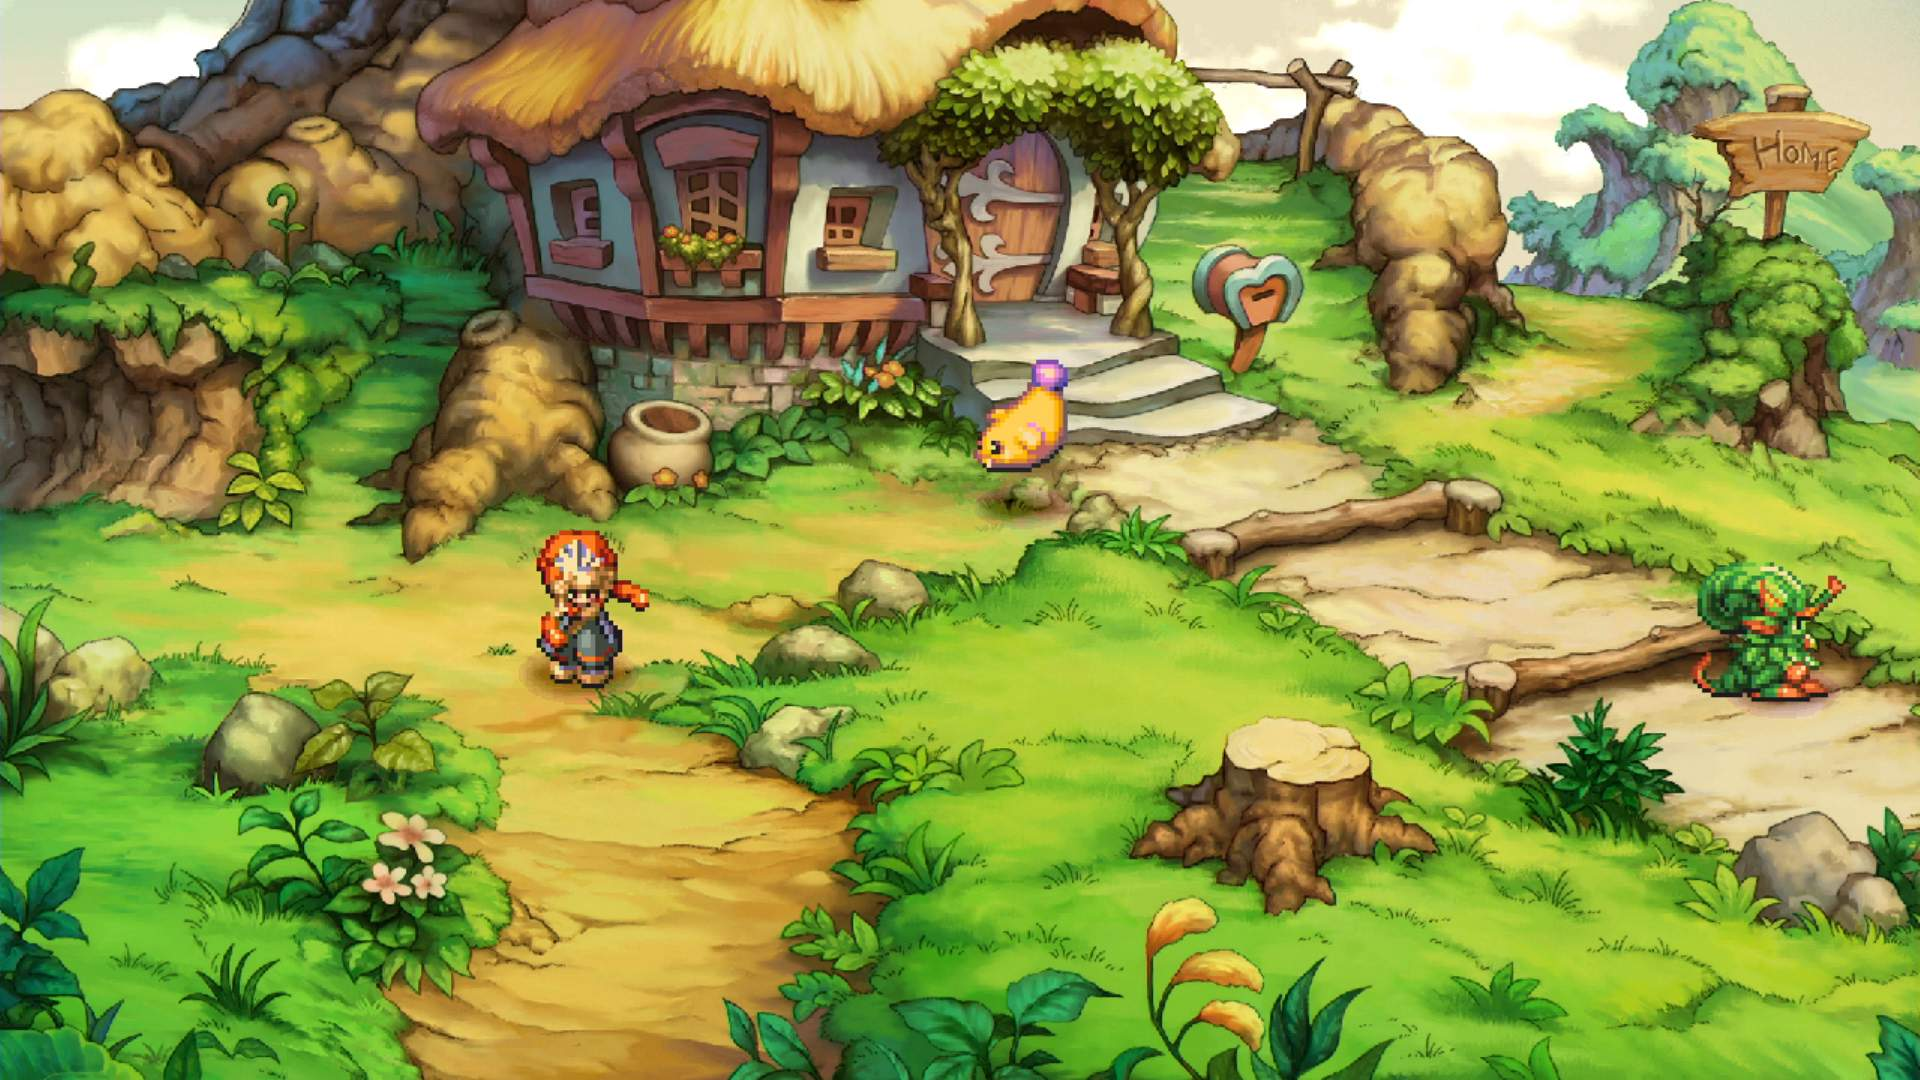 Legend of Mana HERO leaves home and is walking down a path